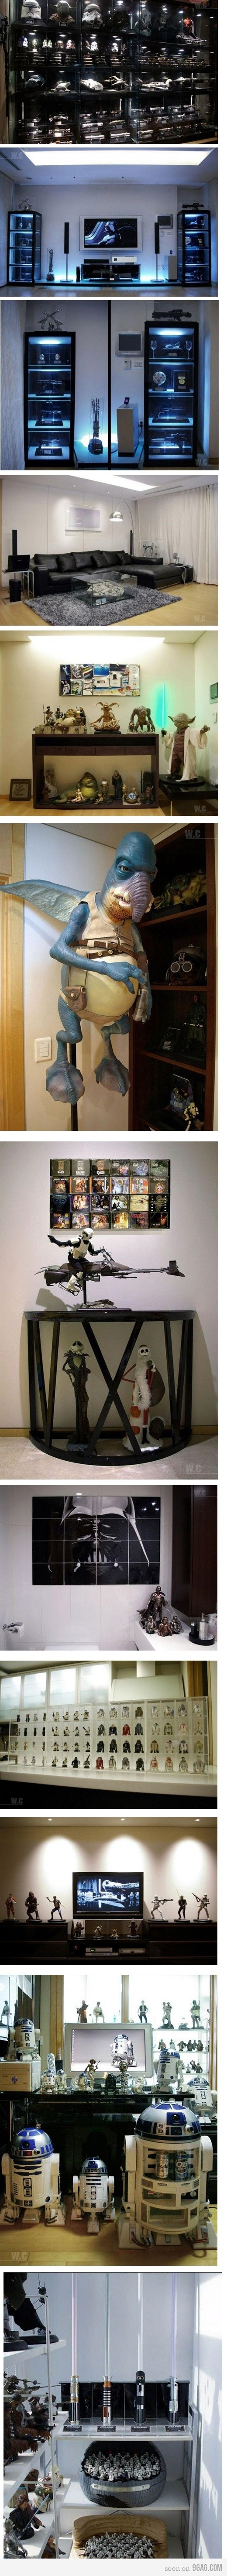 67 best Toy Display images on Pinterest